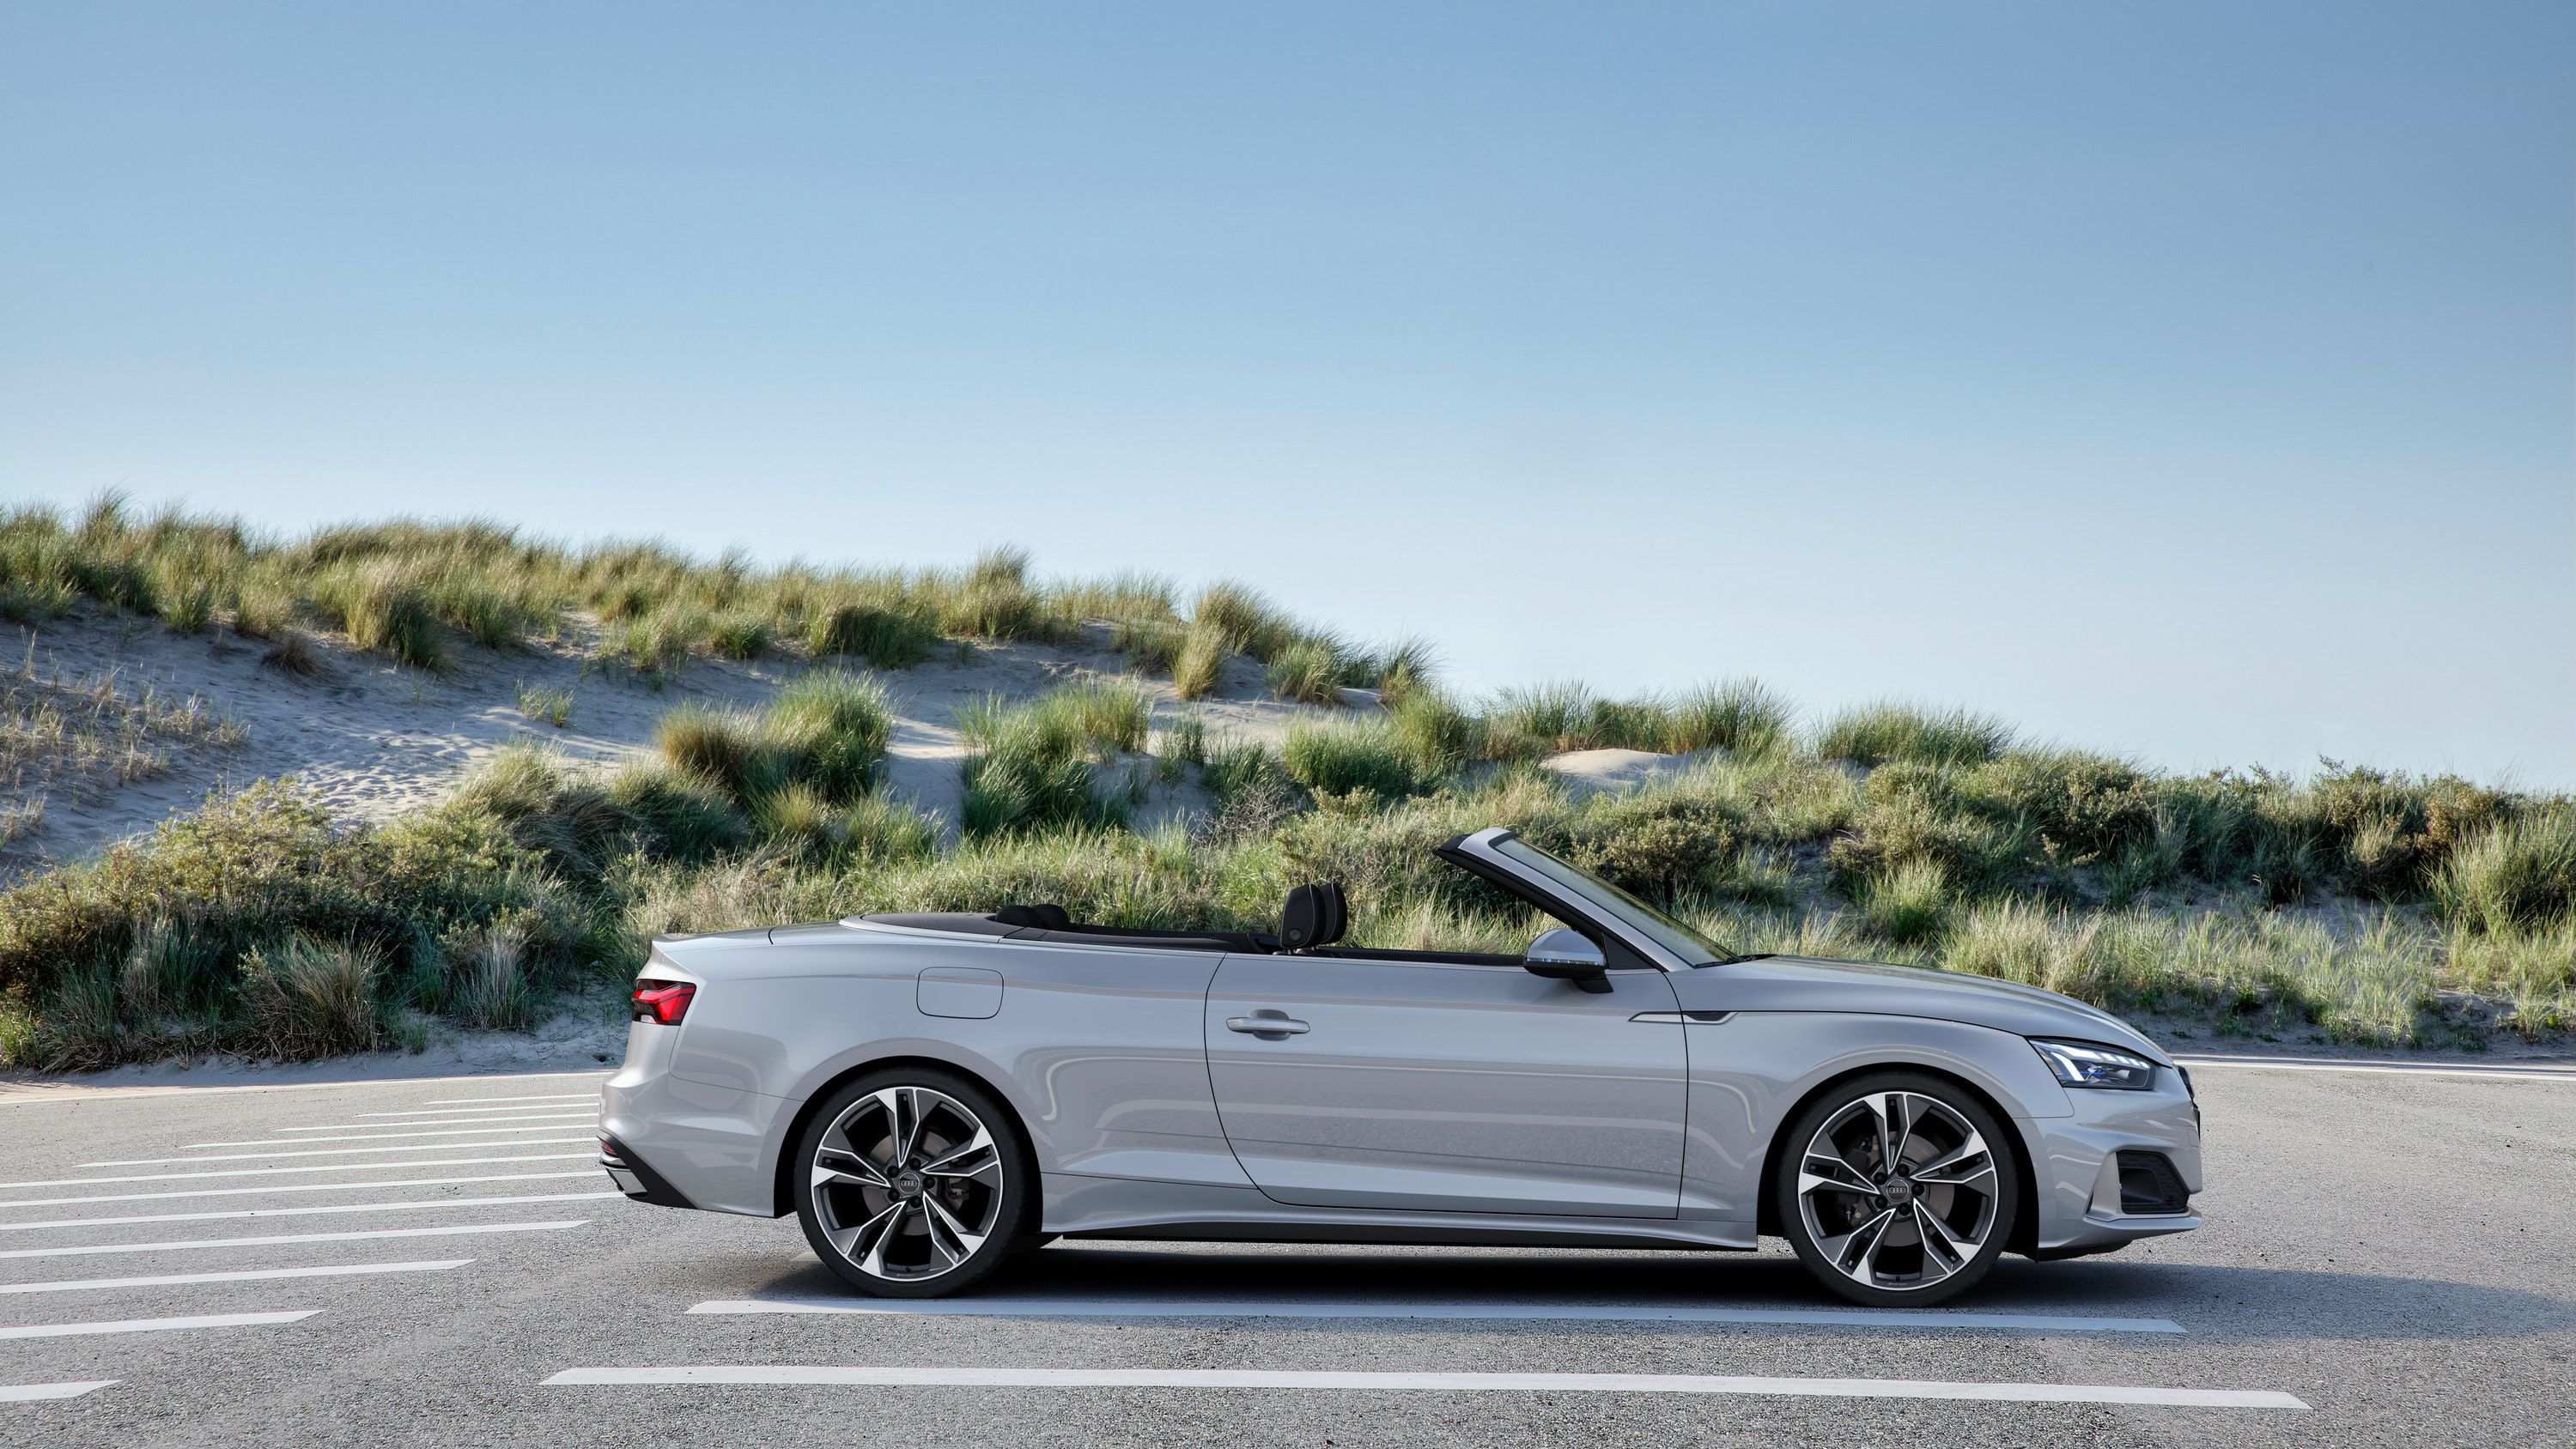 Audi A5 Convertible parked by sand dunes